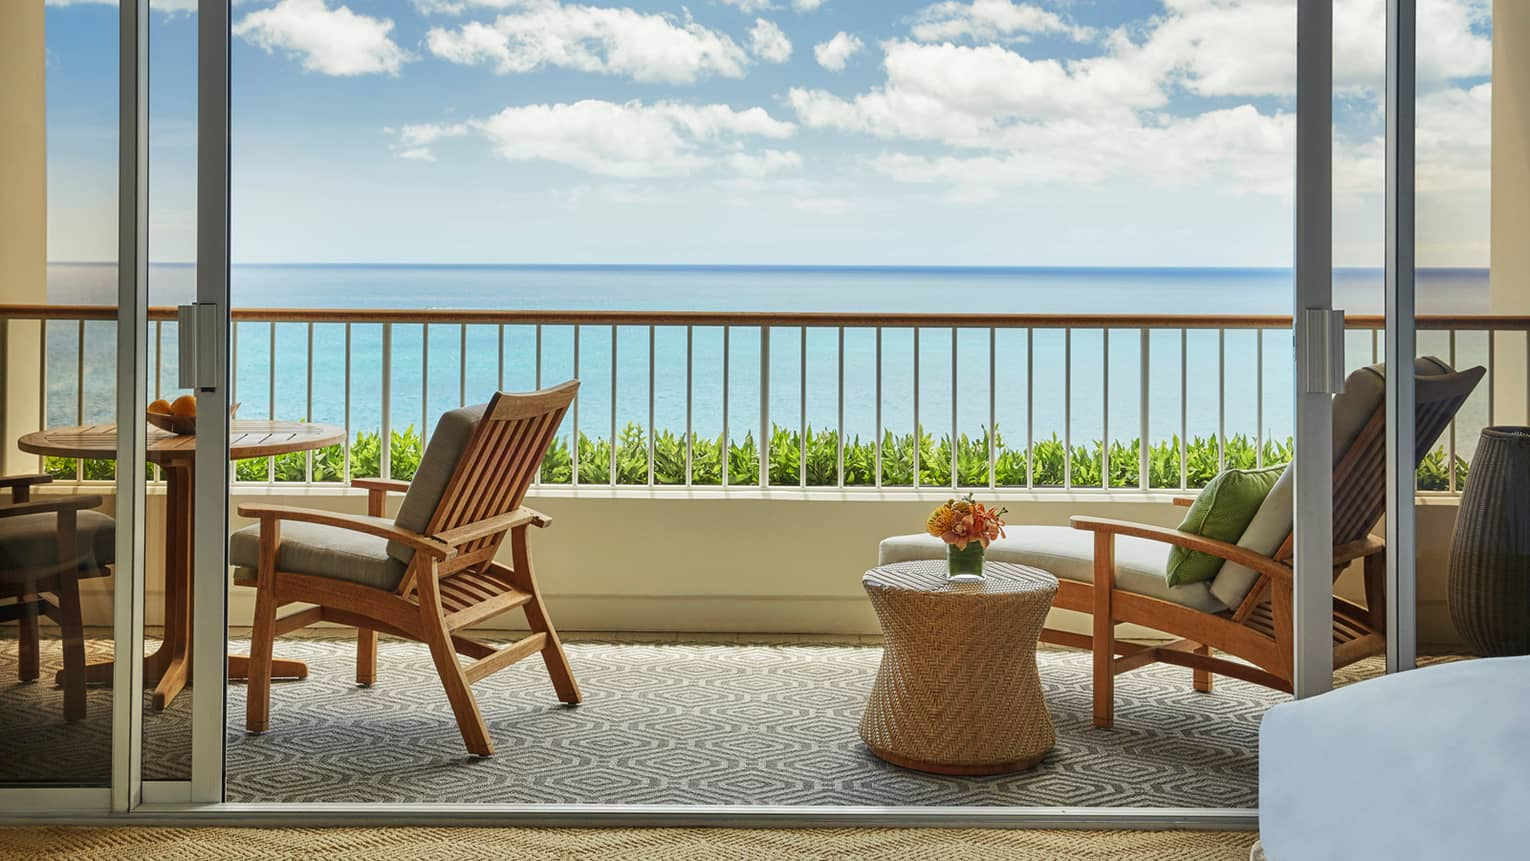 Junior Suite balcony with wood and wicker lounge furniture, ocean views